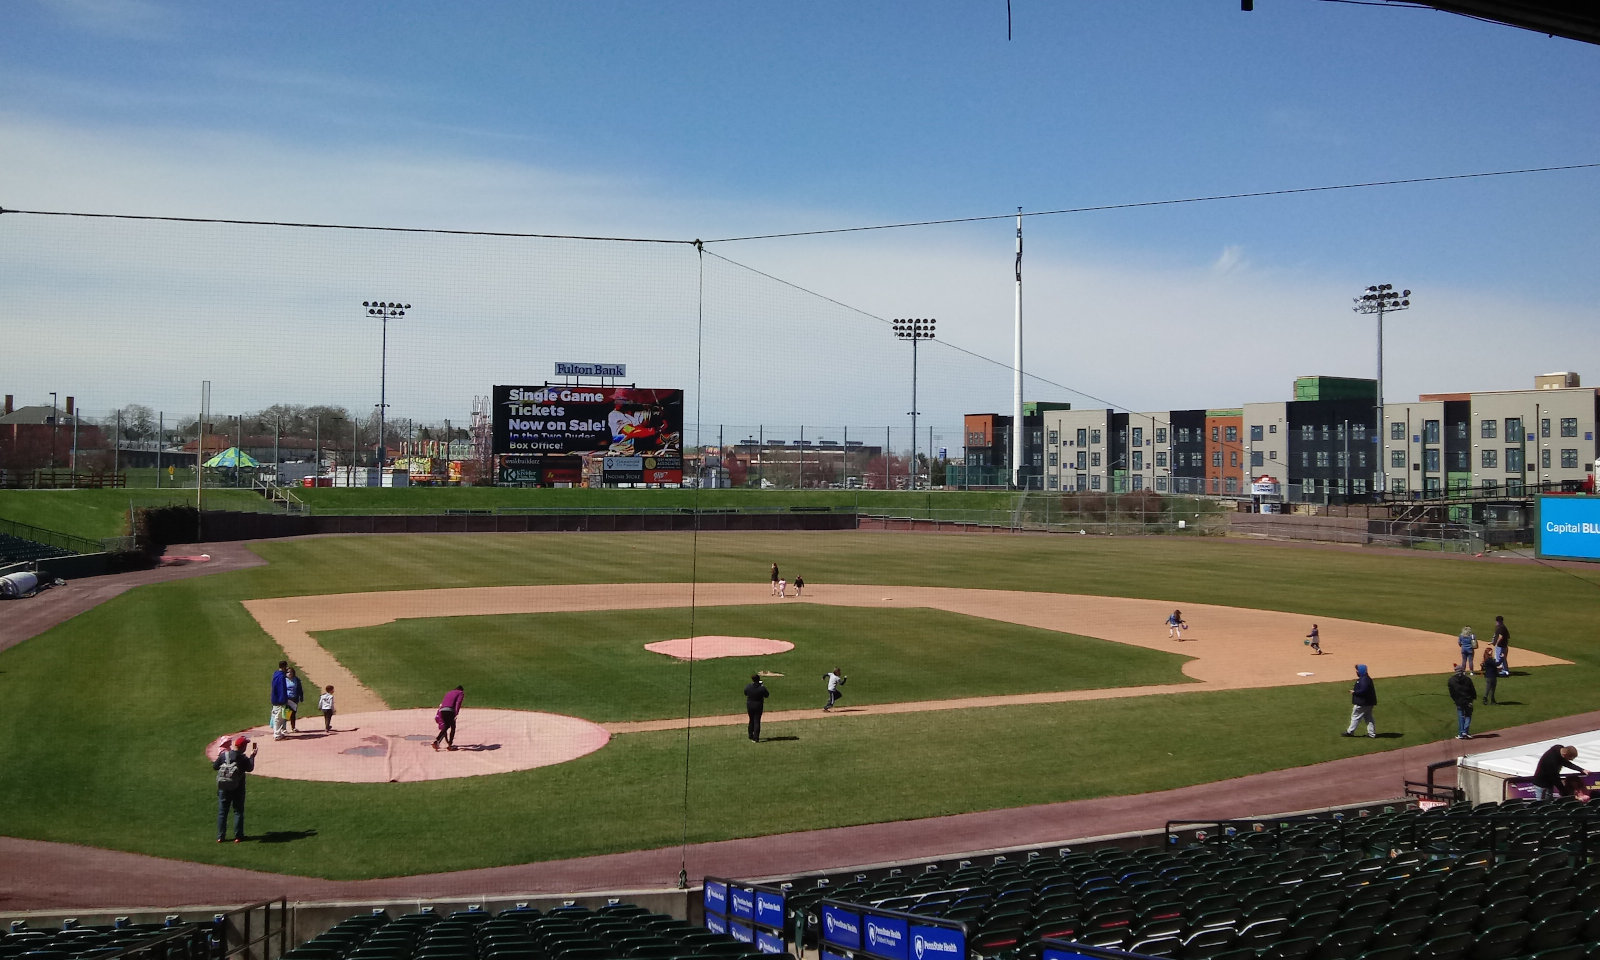 Kids hunting eggs on the infield of Lancaster's Clipper Magazine Stadium